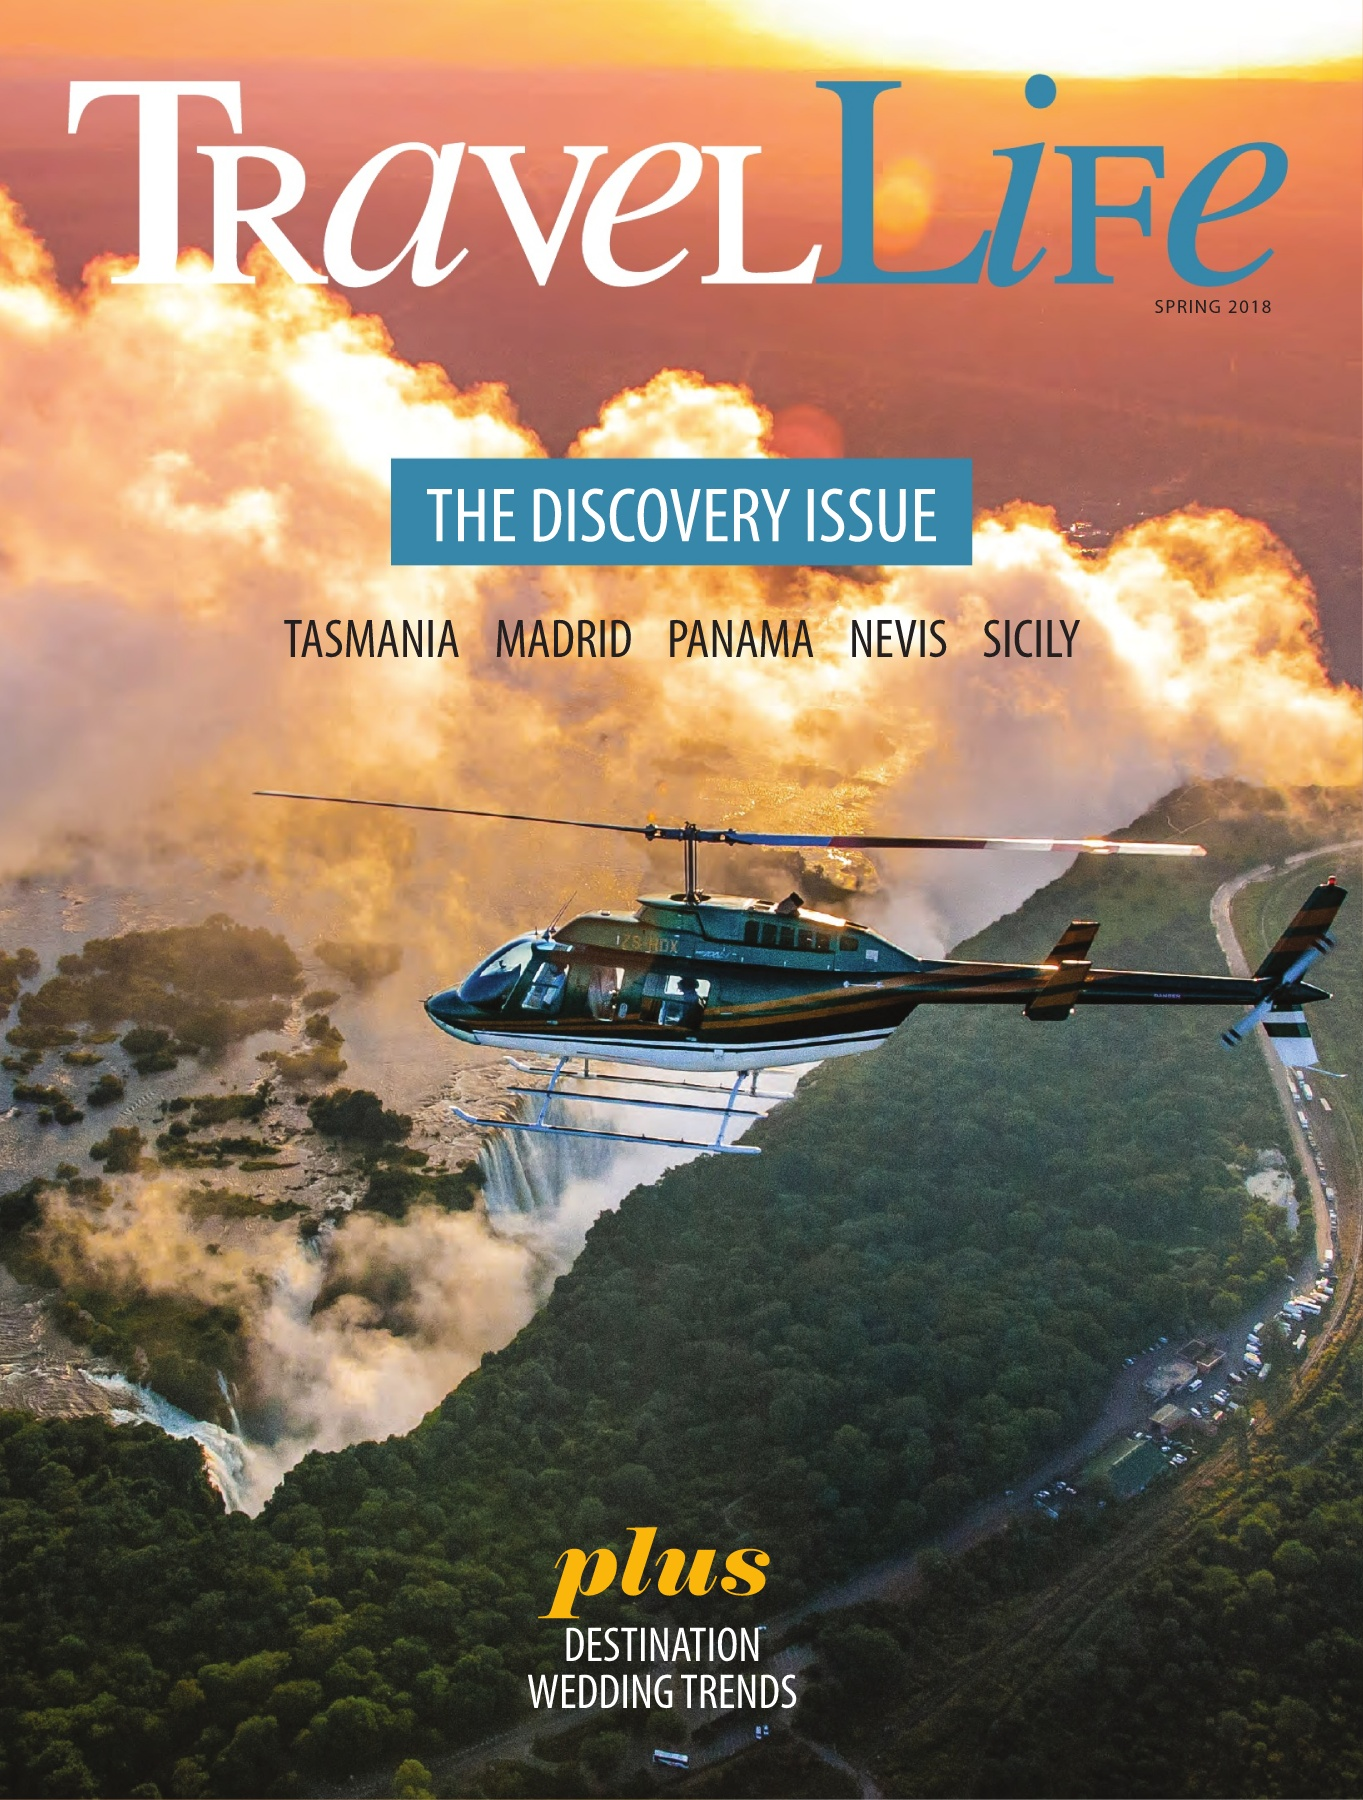 Travel Life Spring 2018 Pages 1 50 Text Version Anyflip